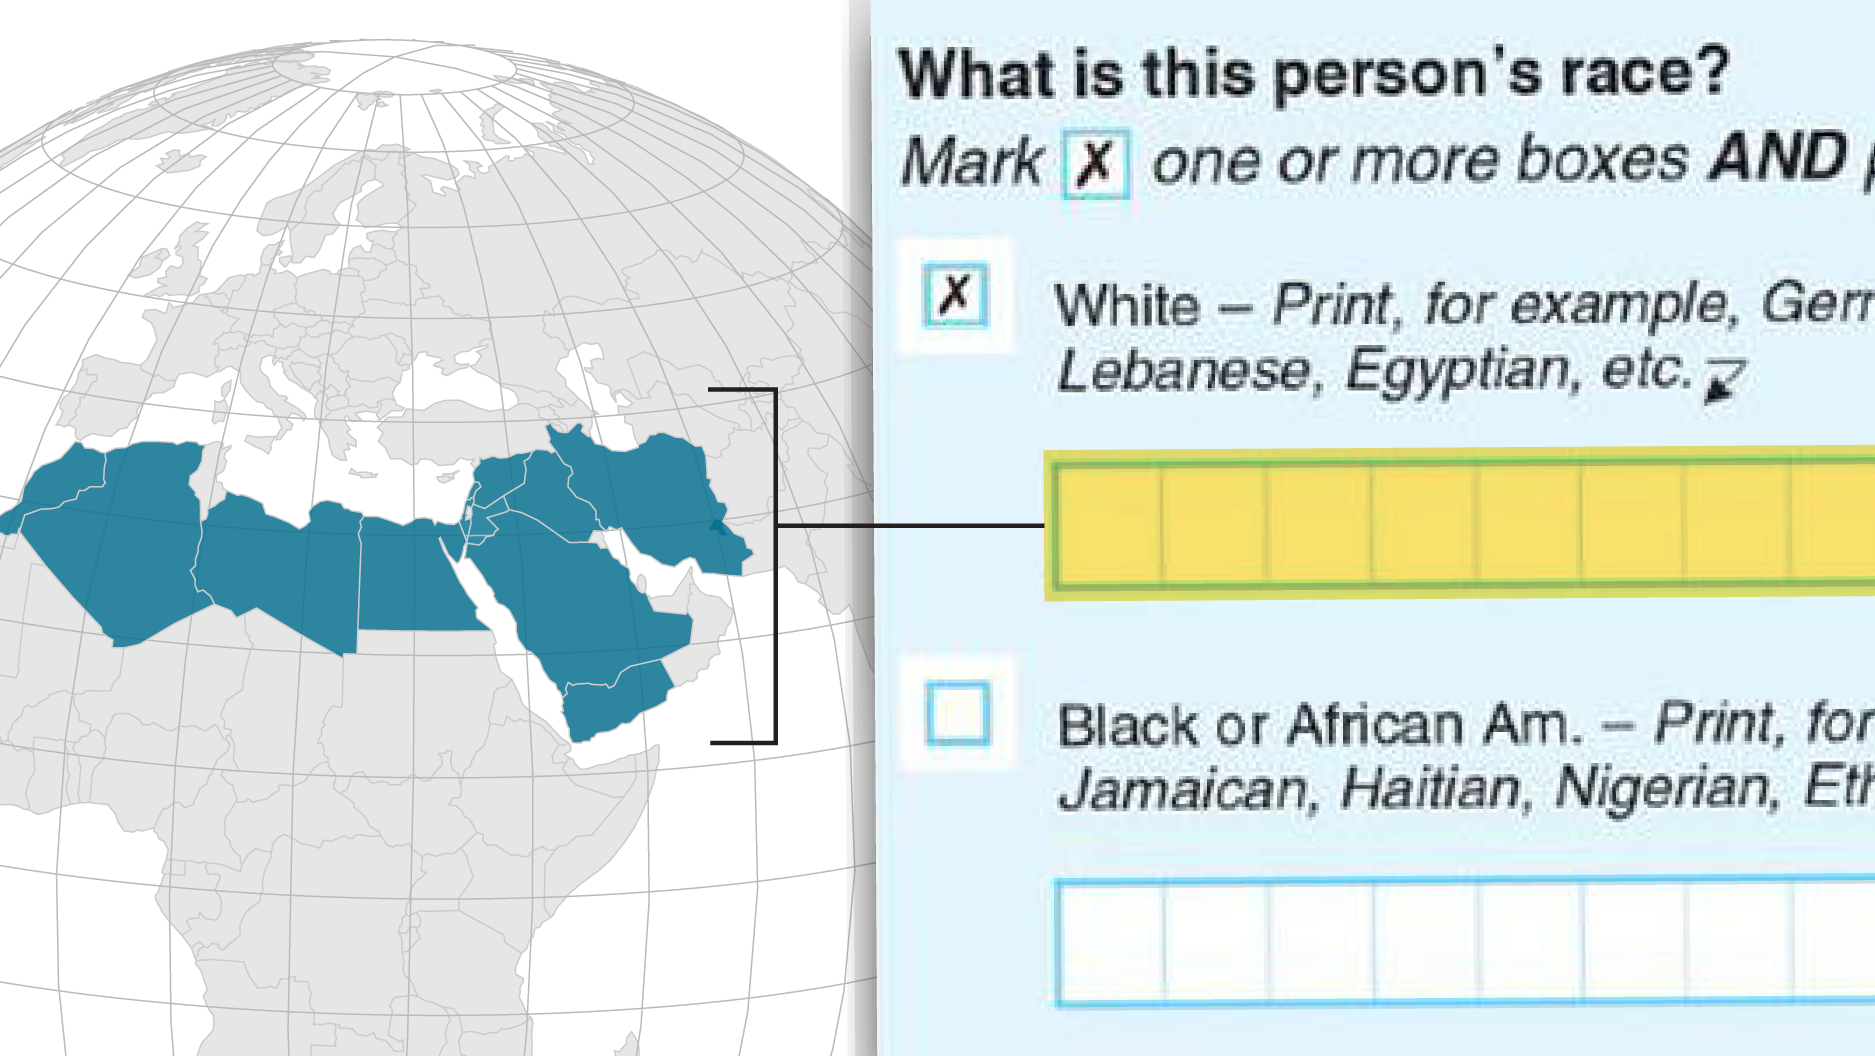 Are Arabs and Iranians white? Census says yes, but many disagree